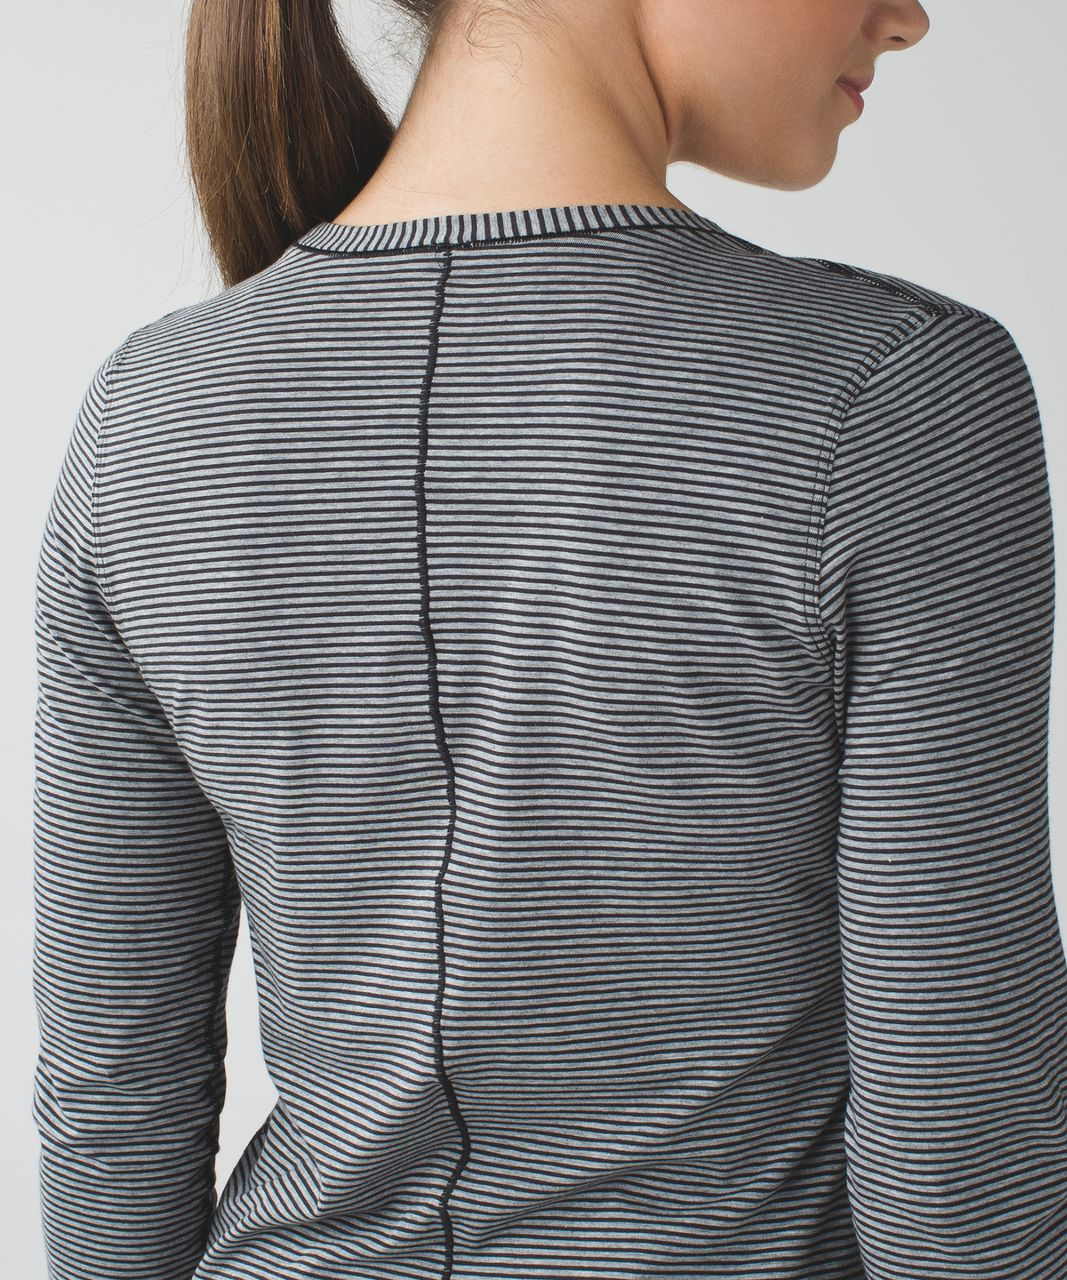 Lululemon Circadian Long Sleeve V Neck Tee - Mini Pop Stripe Heathered Medium Grey Black